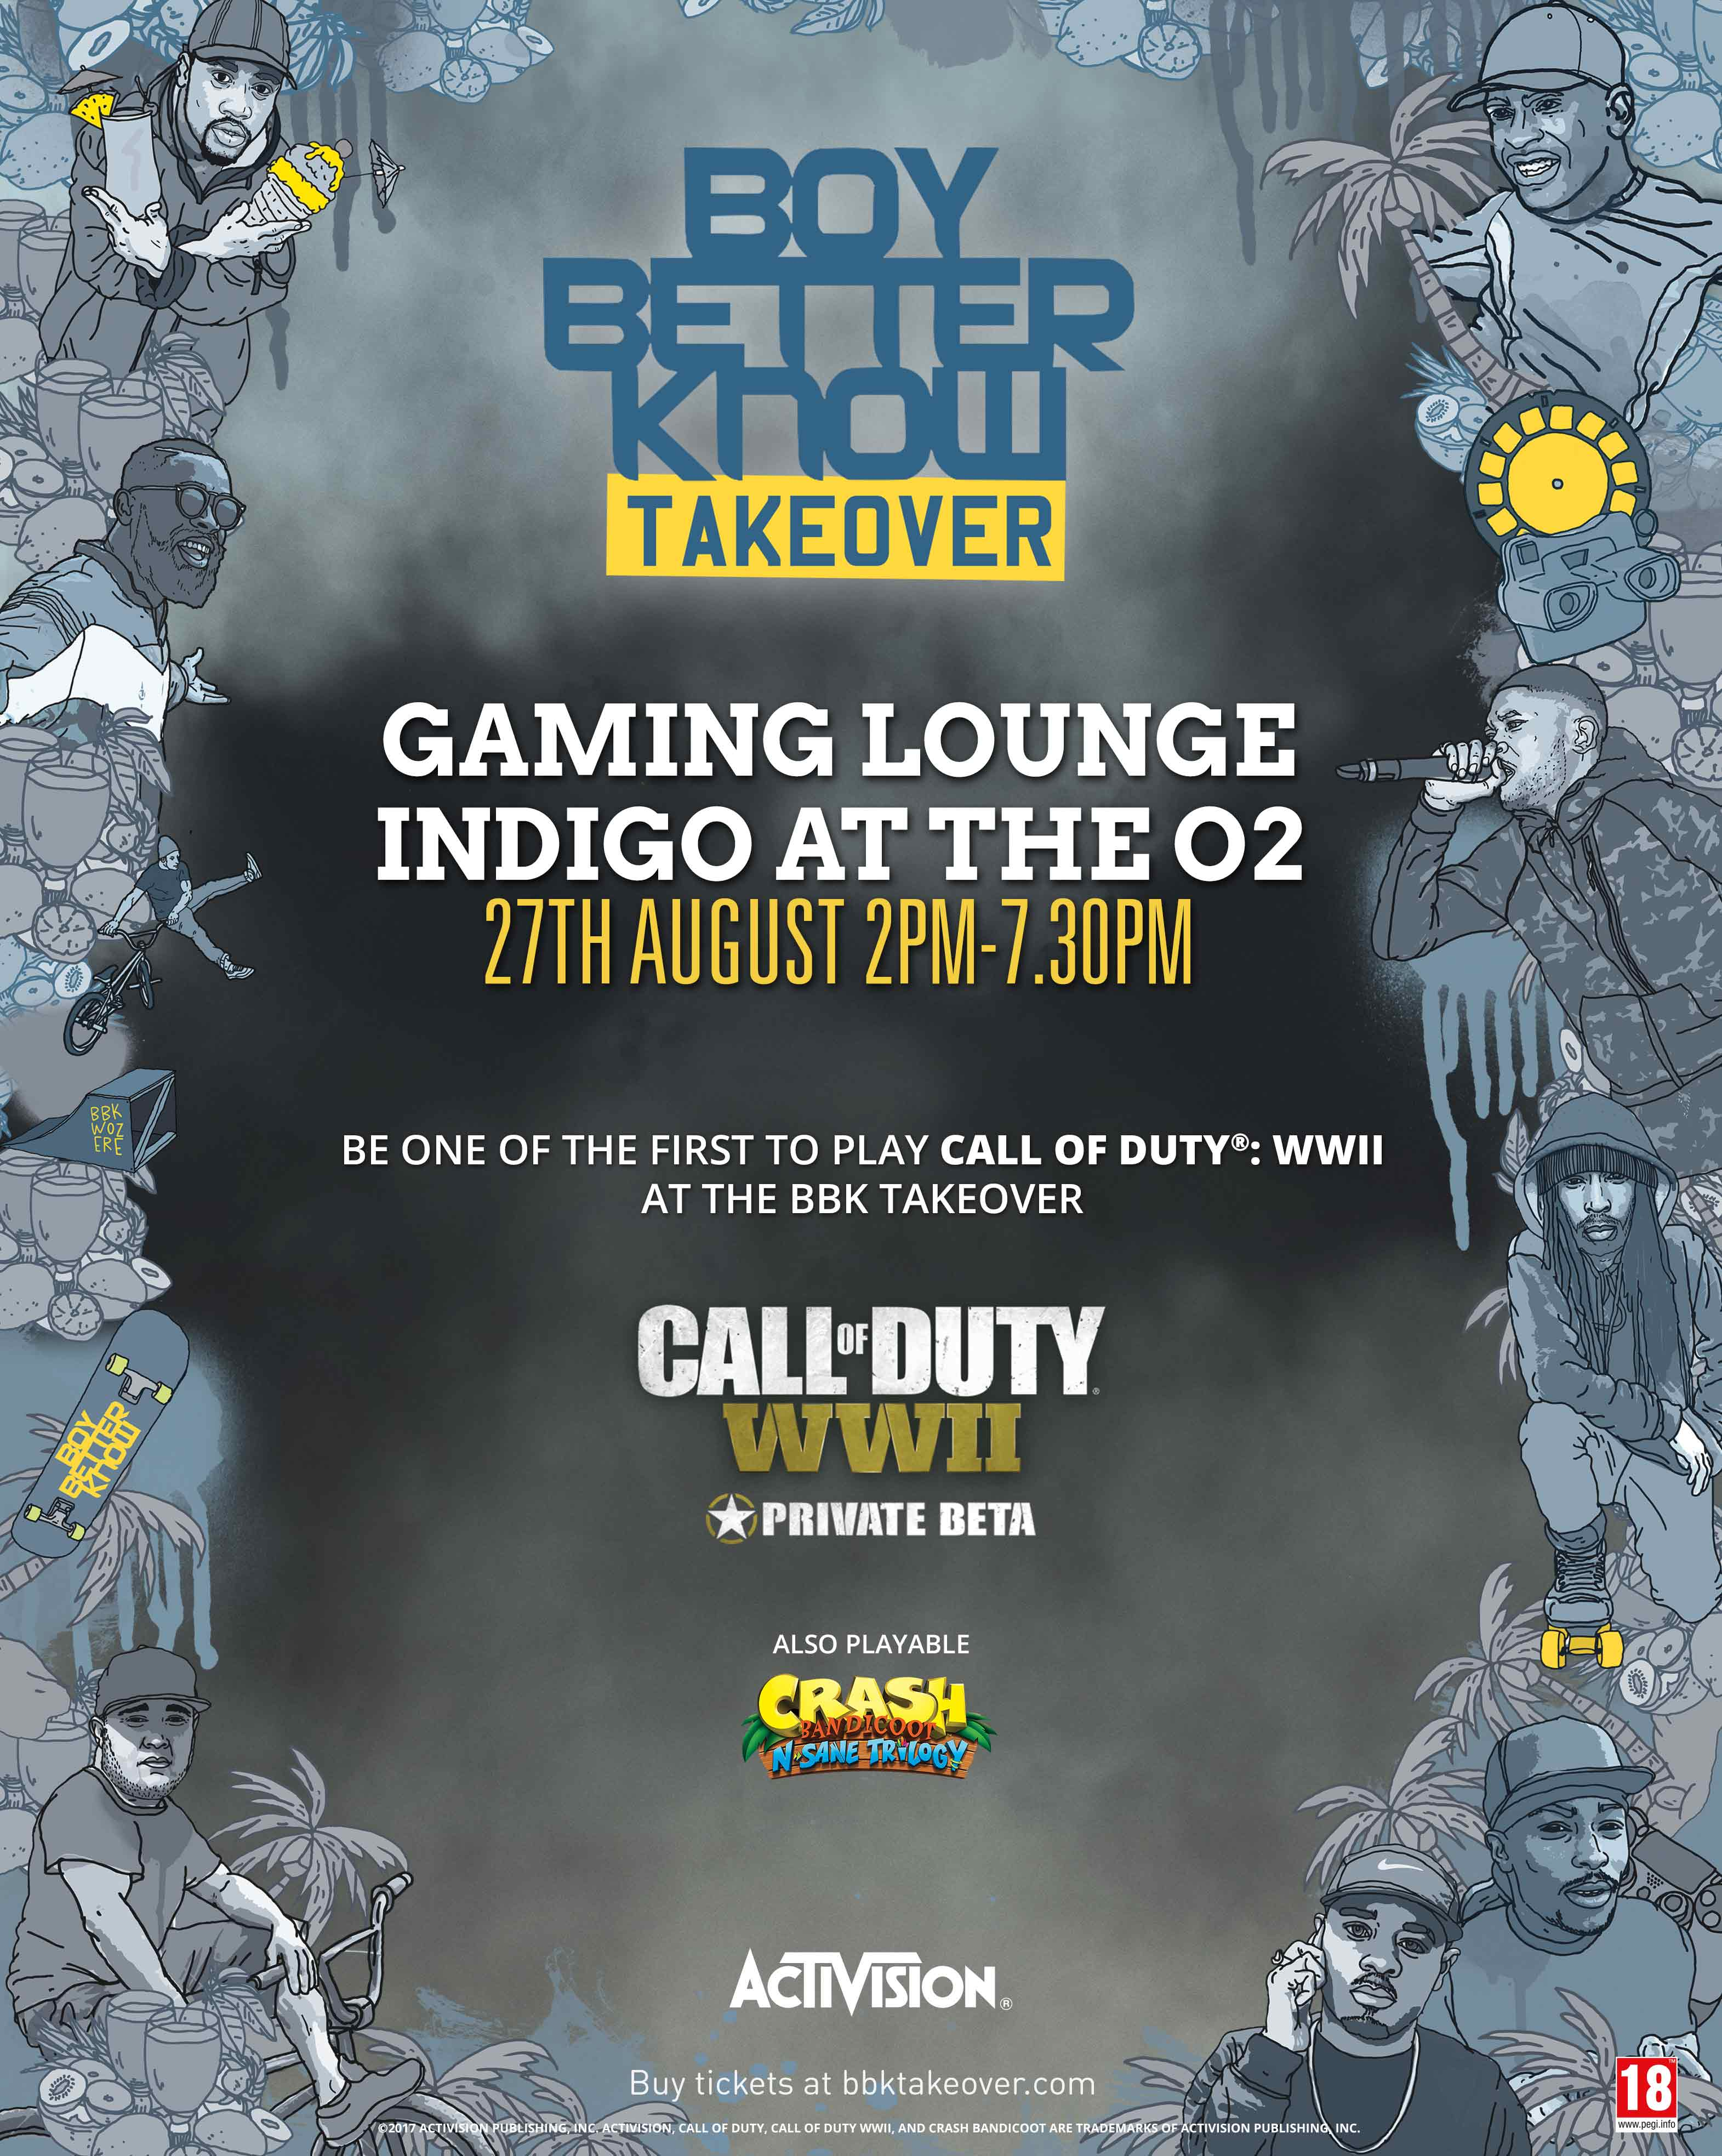 Boy Better Know O2 Takeover Gaming Lounge